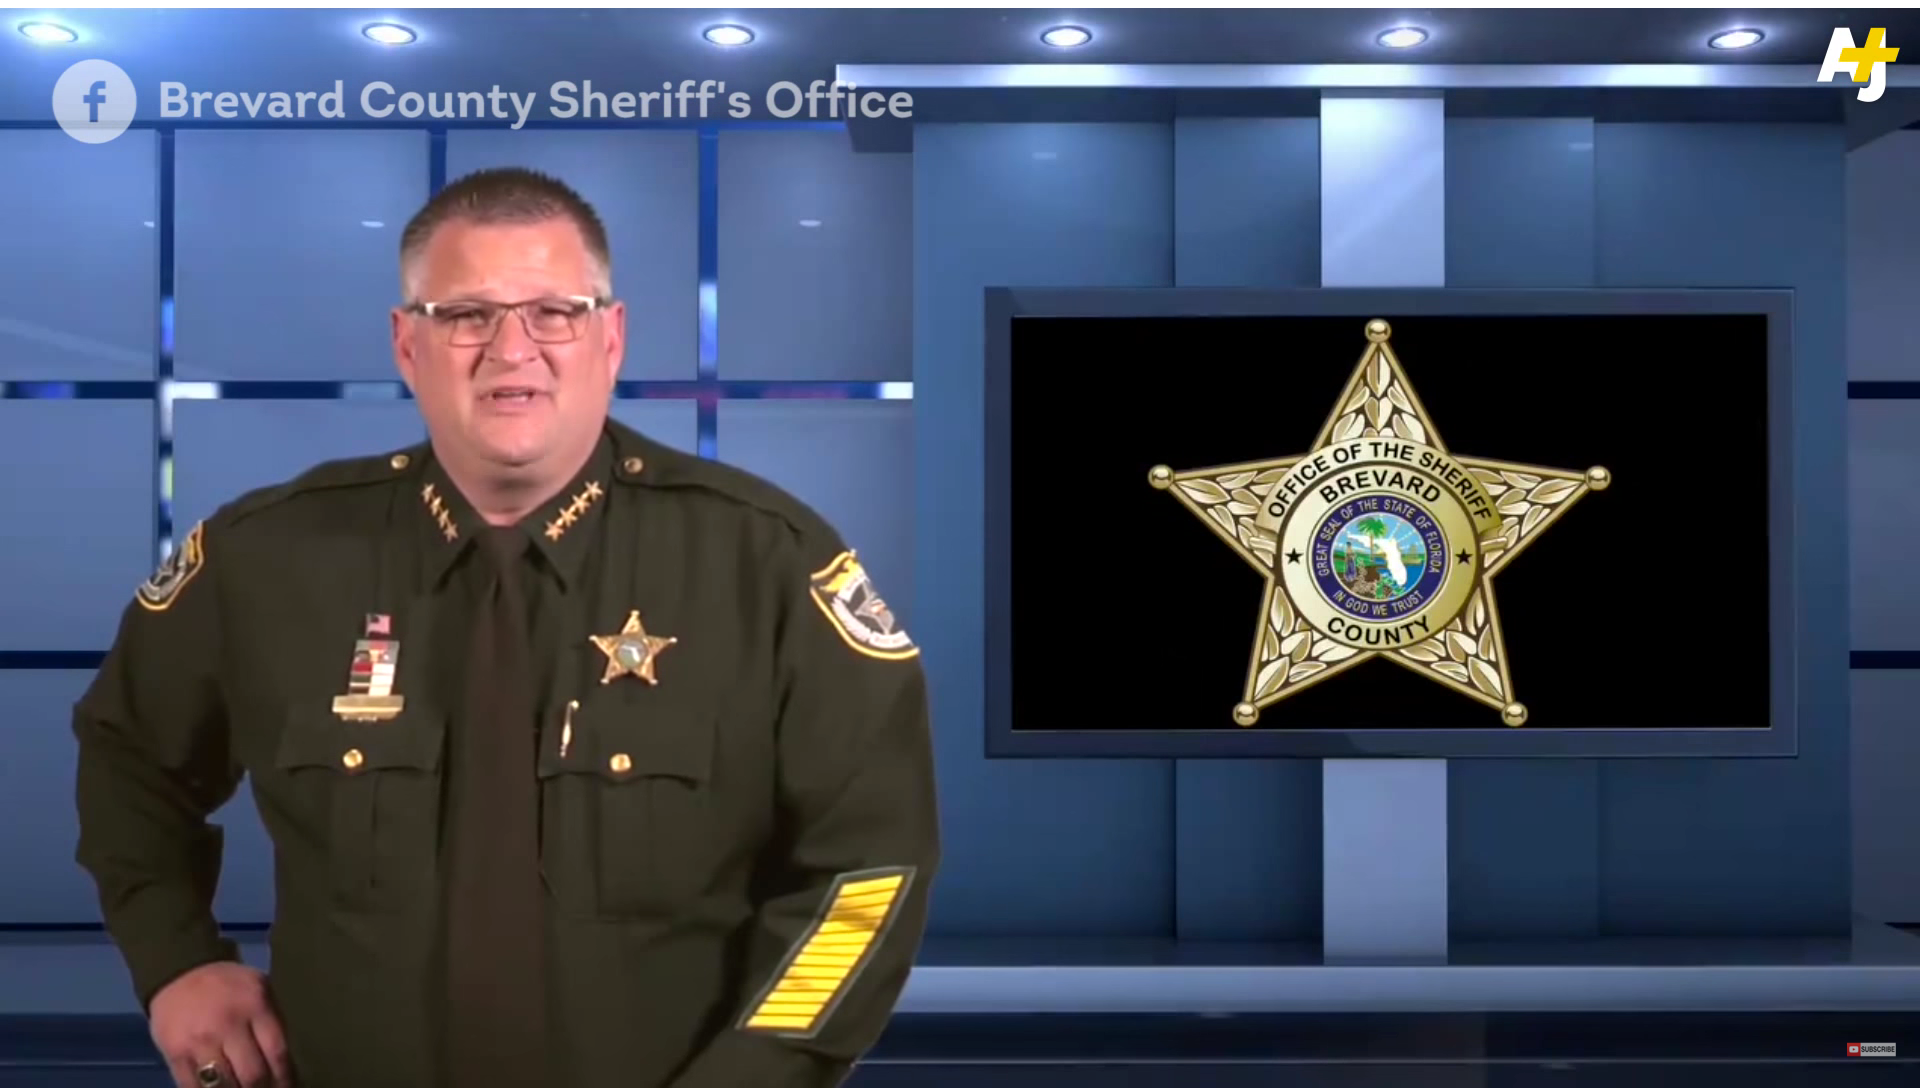 Another Sheriff Calls For Florida Citizens To Arm Themselves (Video)